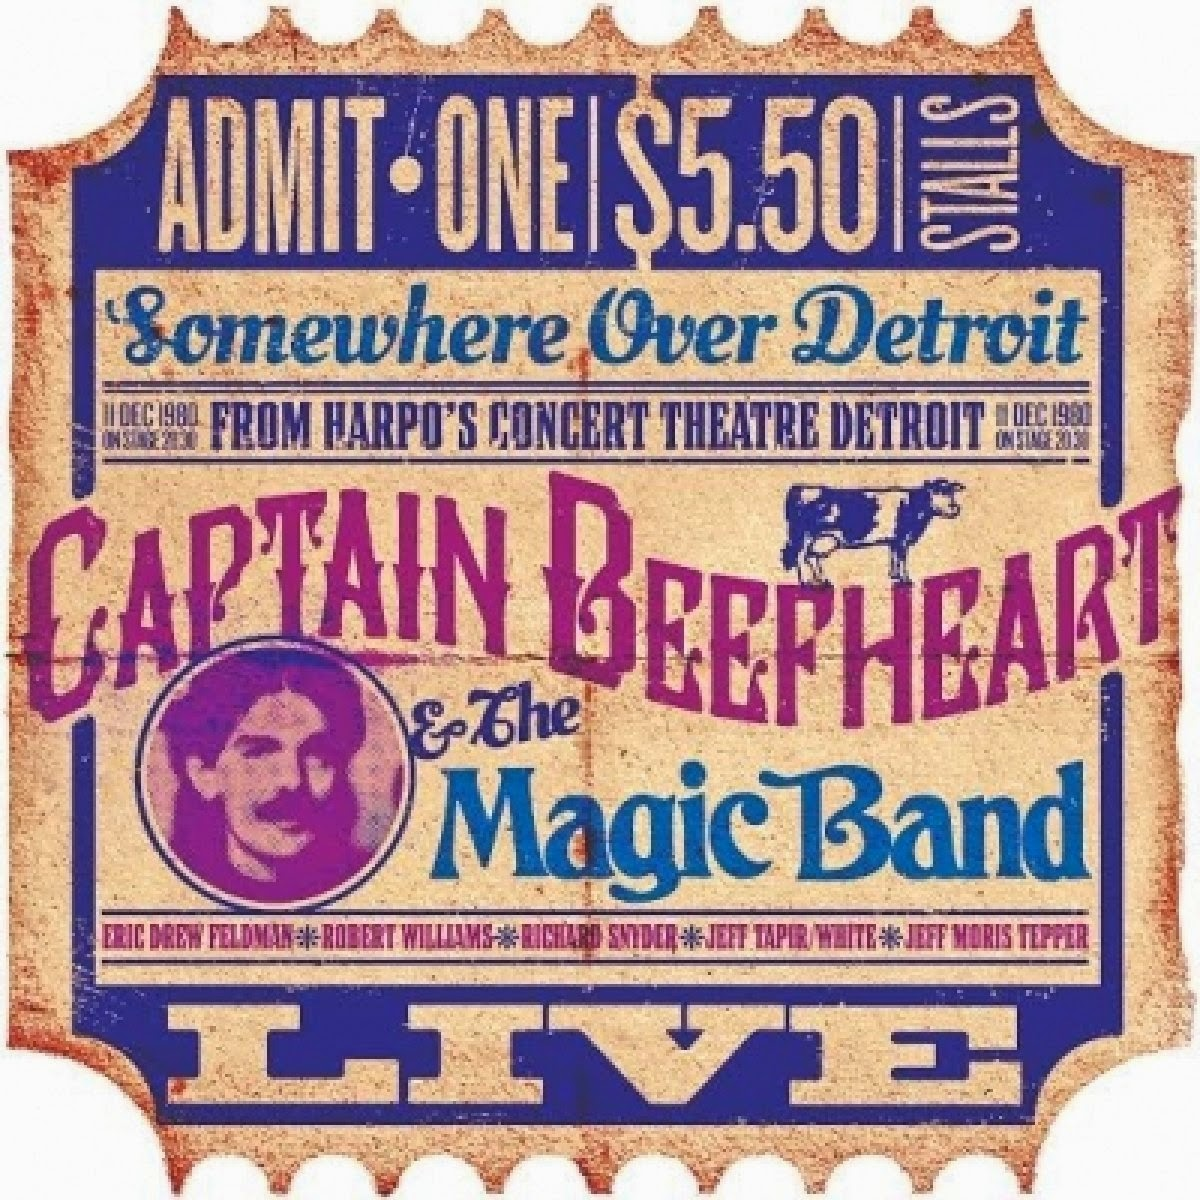 Captain Beefheart & the Magic Band's Live from Harpos 1980